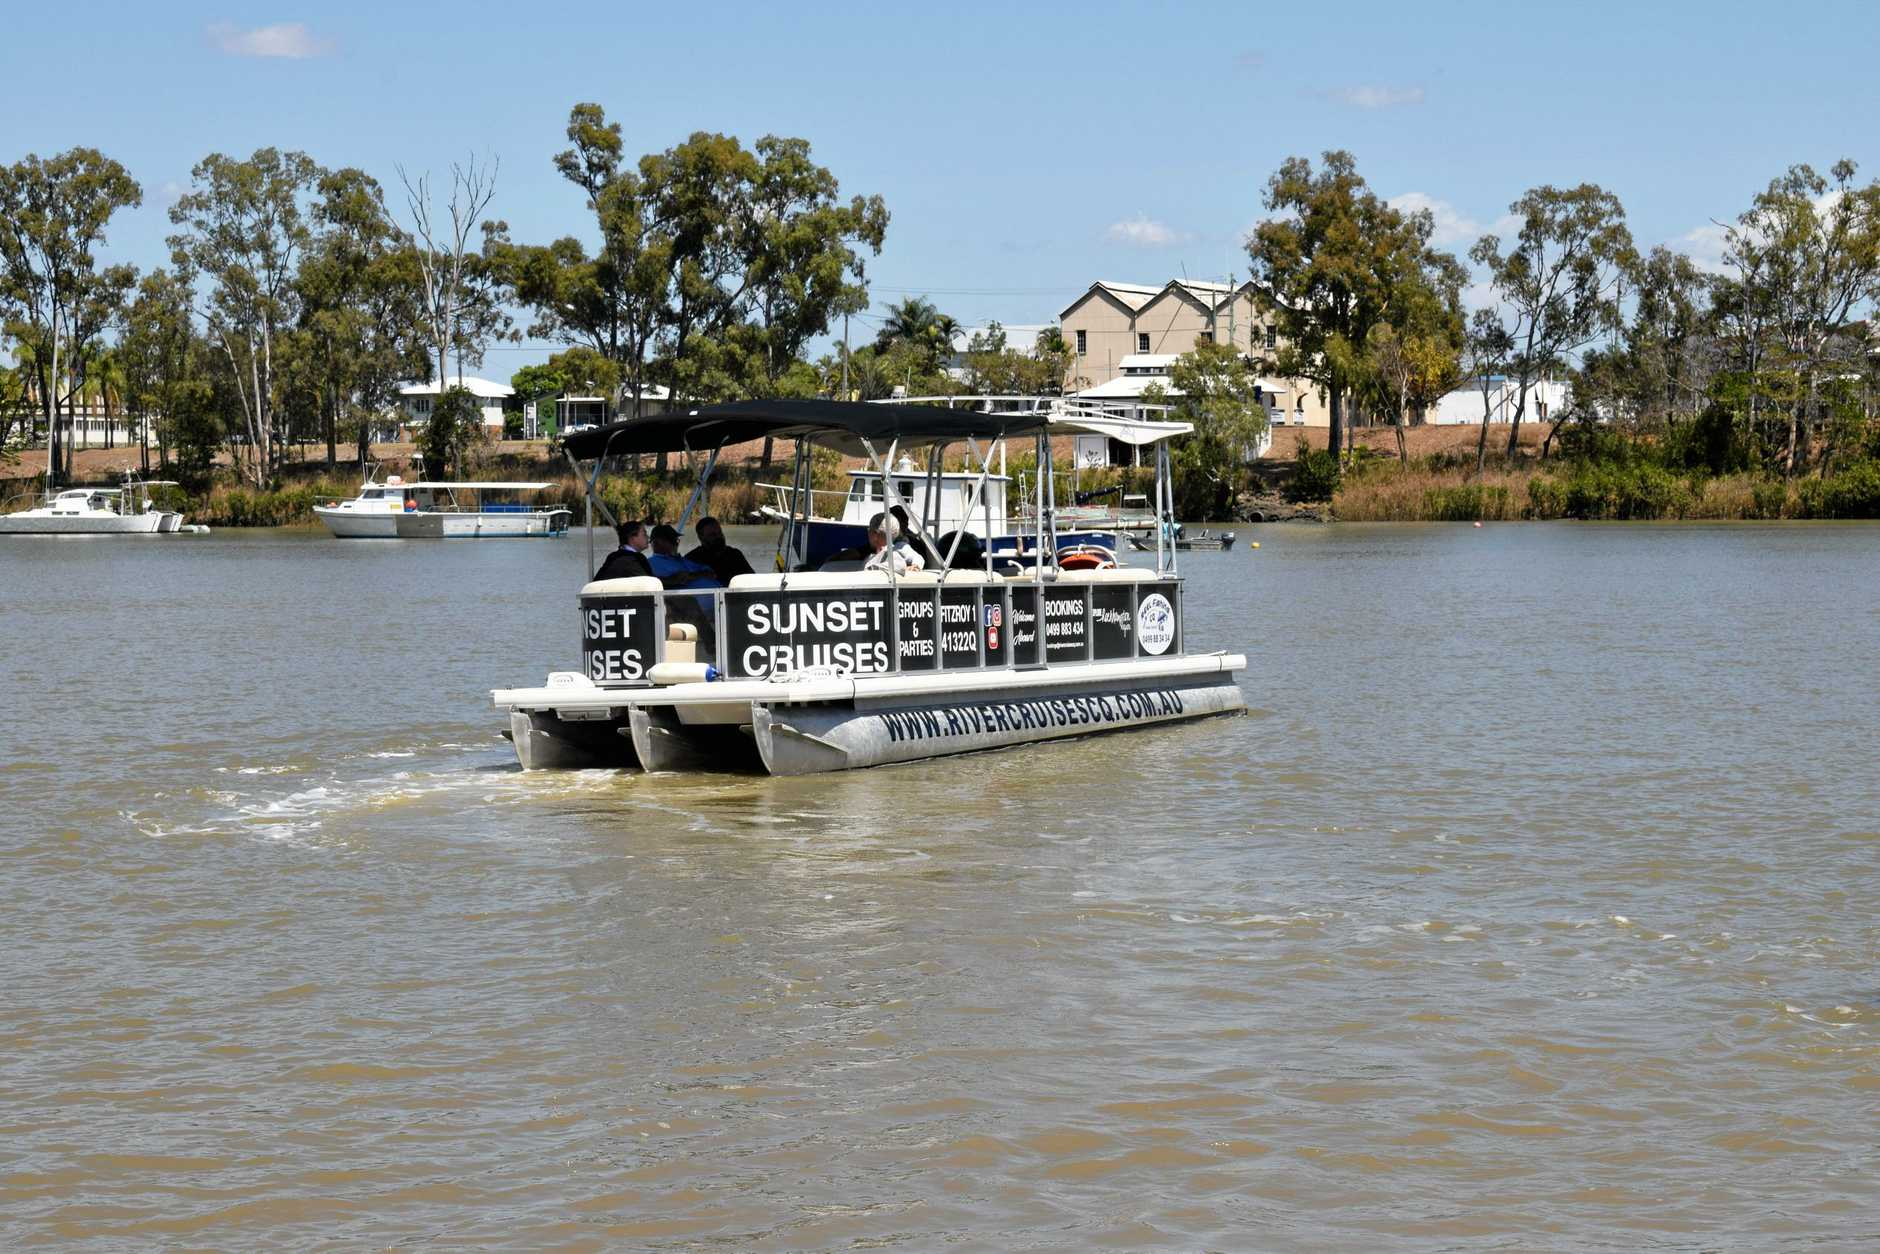 Craig Robertson runs River Cruise CQ scenic tours and is finding the jellyfish are a problem when idling.